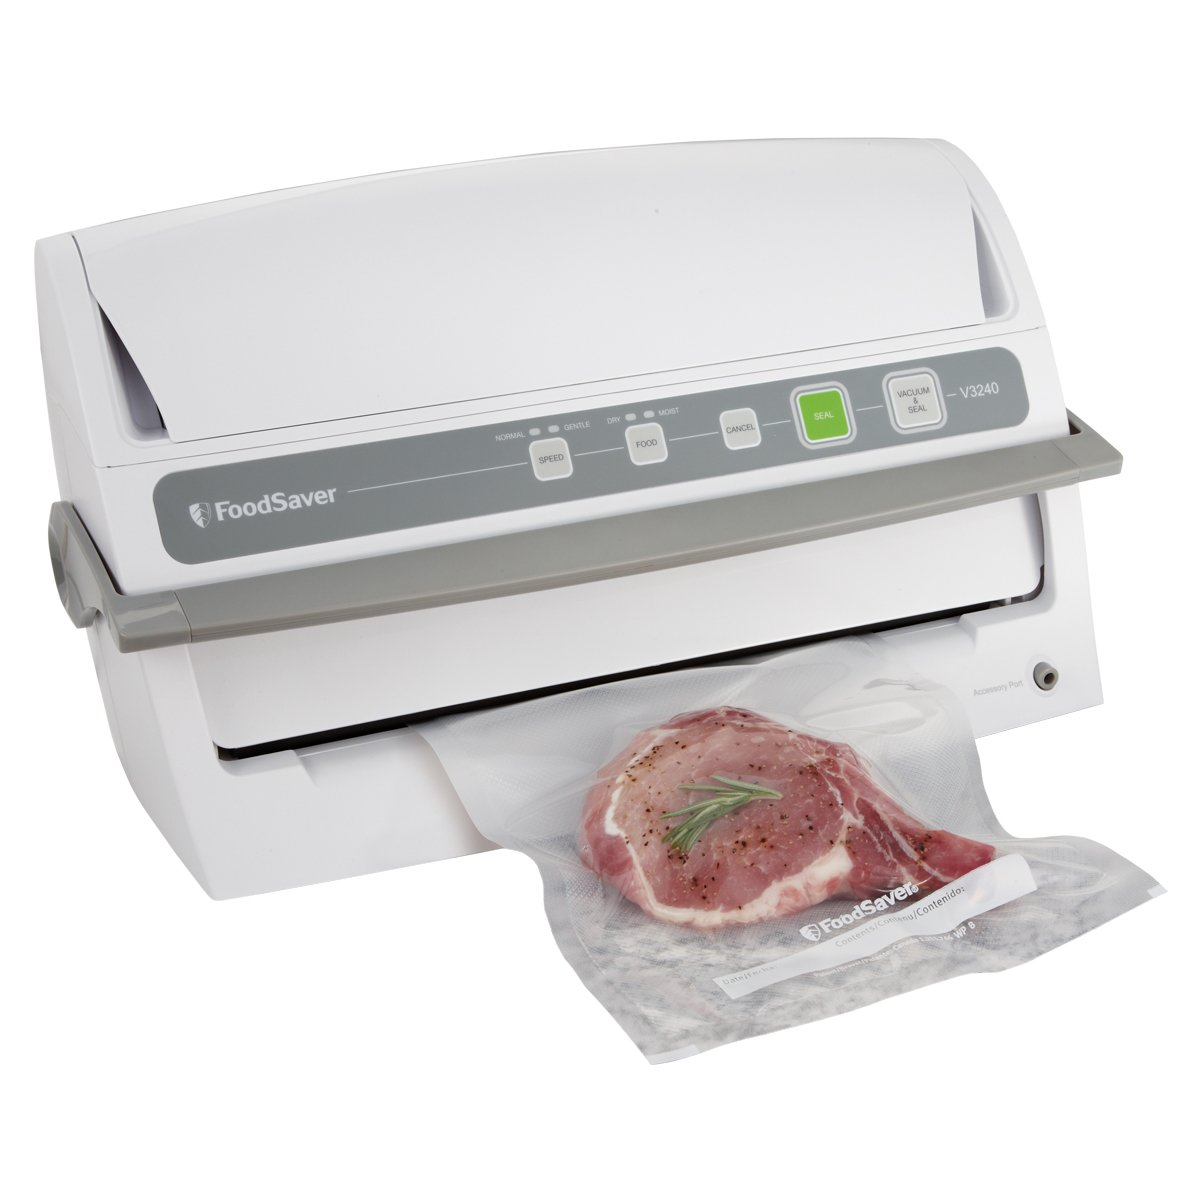 amazon com foodsaver v3240 vacuum sealing system with starter kit rh amazon com Kenmore Model 790 Electric Range Kenmore Washer Service Manual